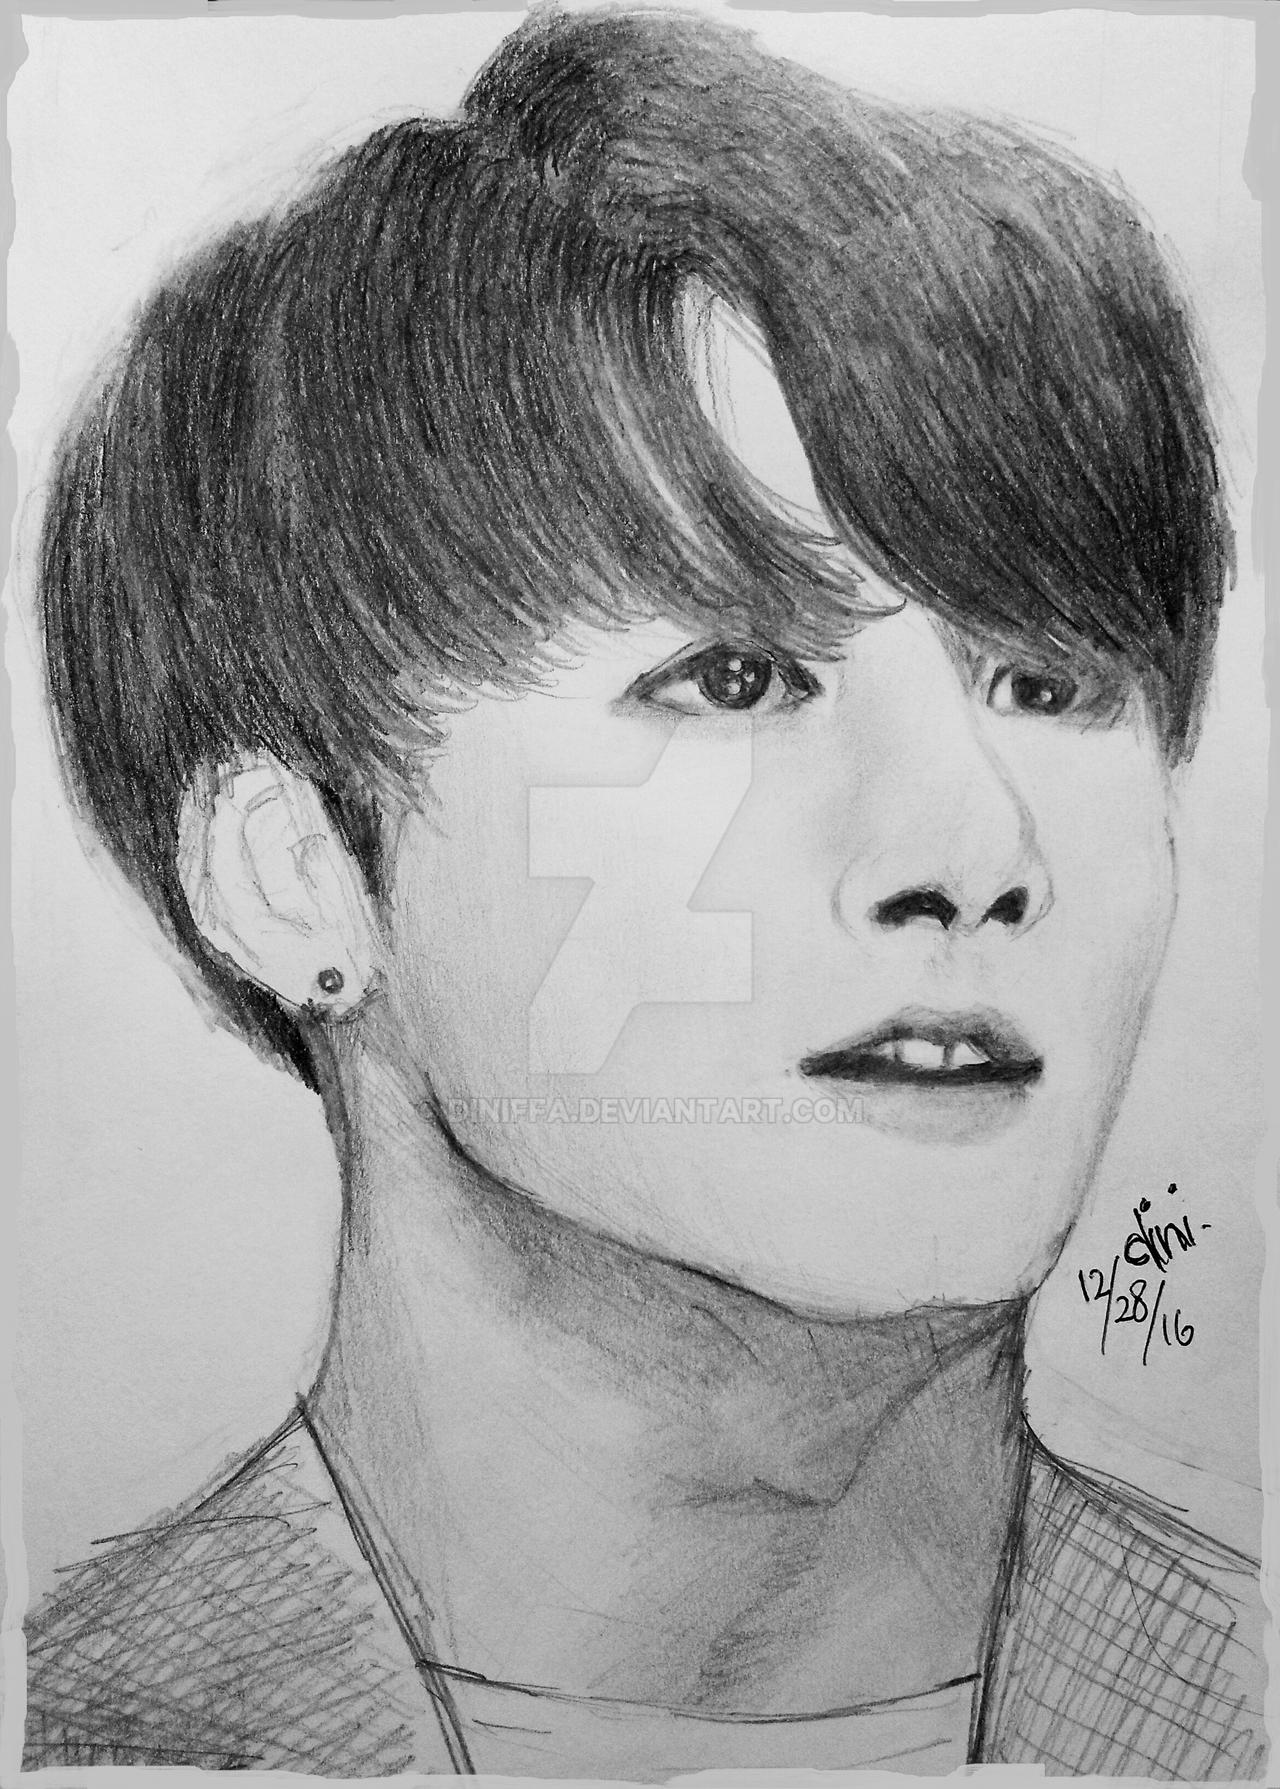 BTS Jeon Jungkook Fan Art By Diniffa On DeviantArt